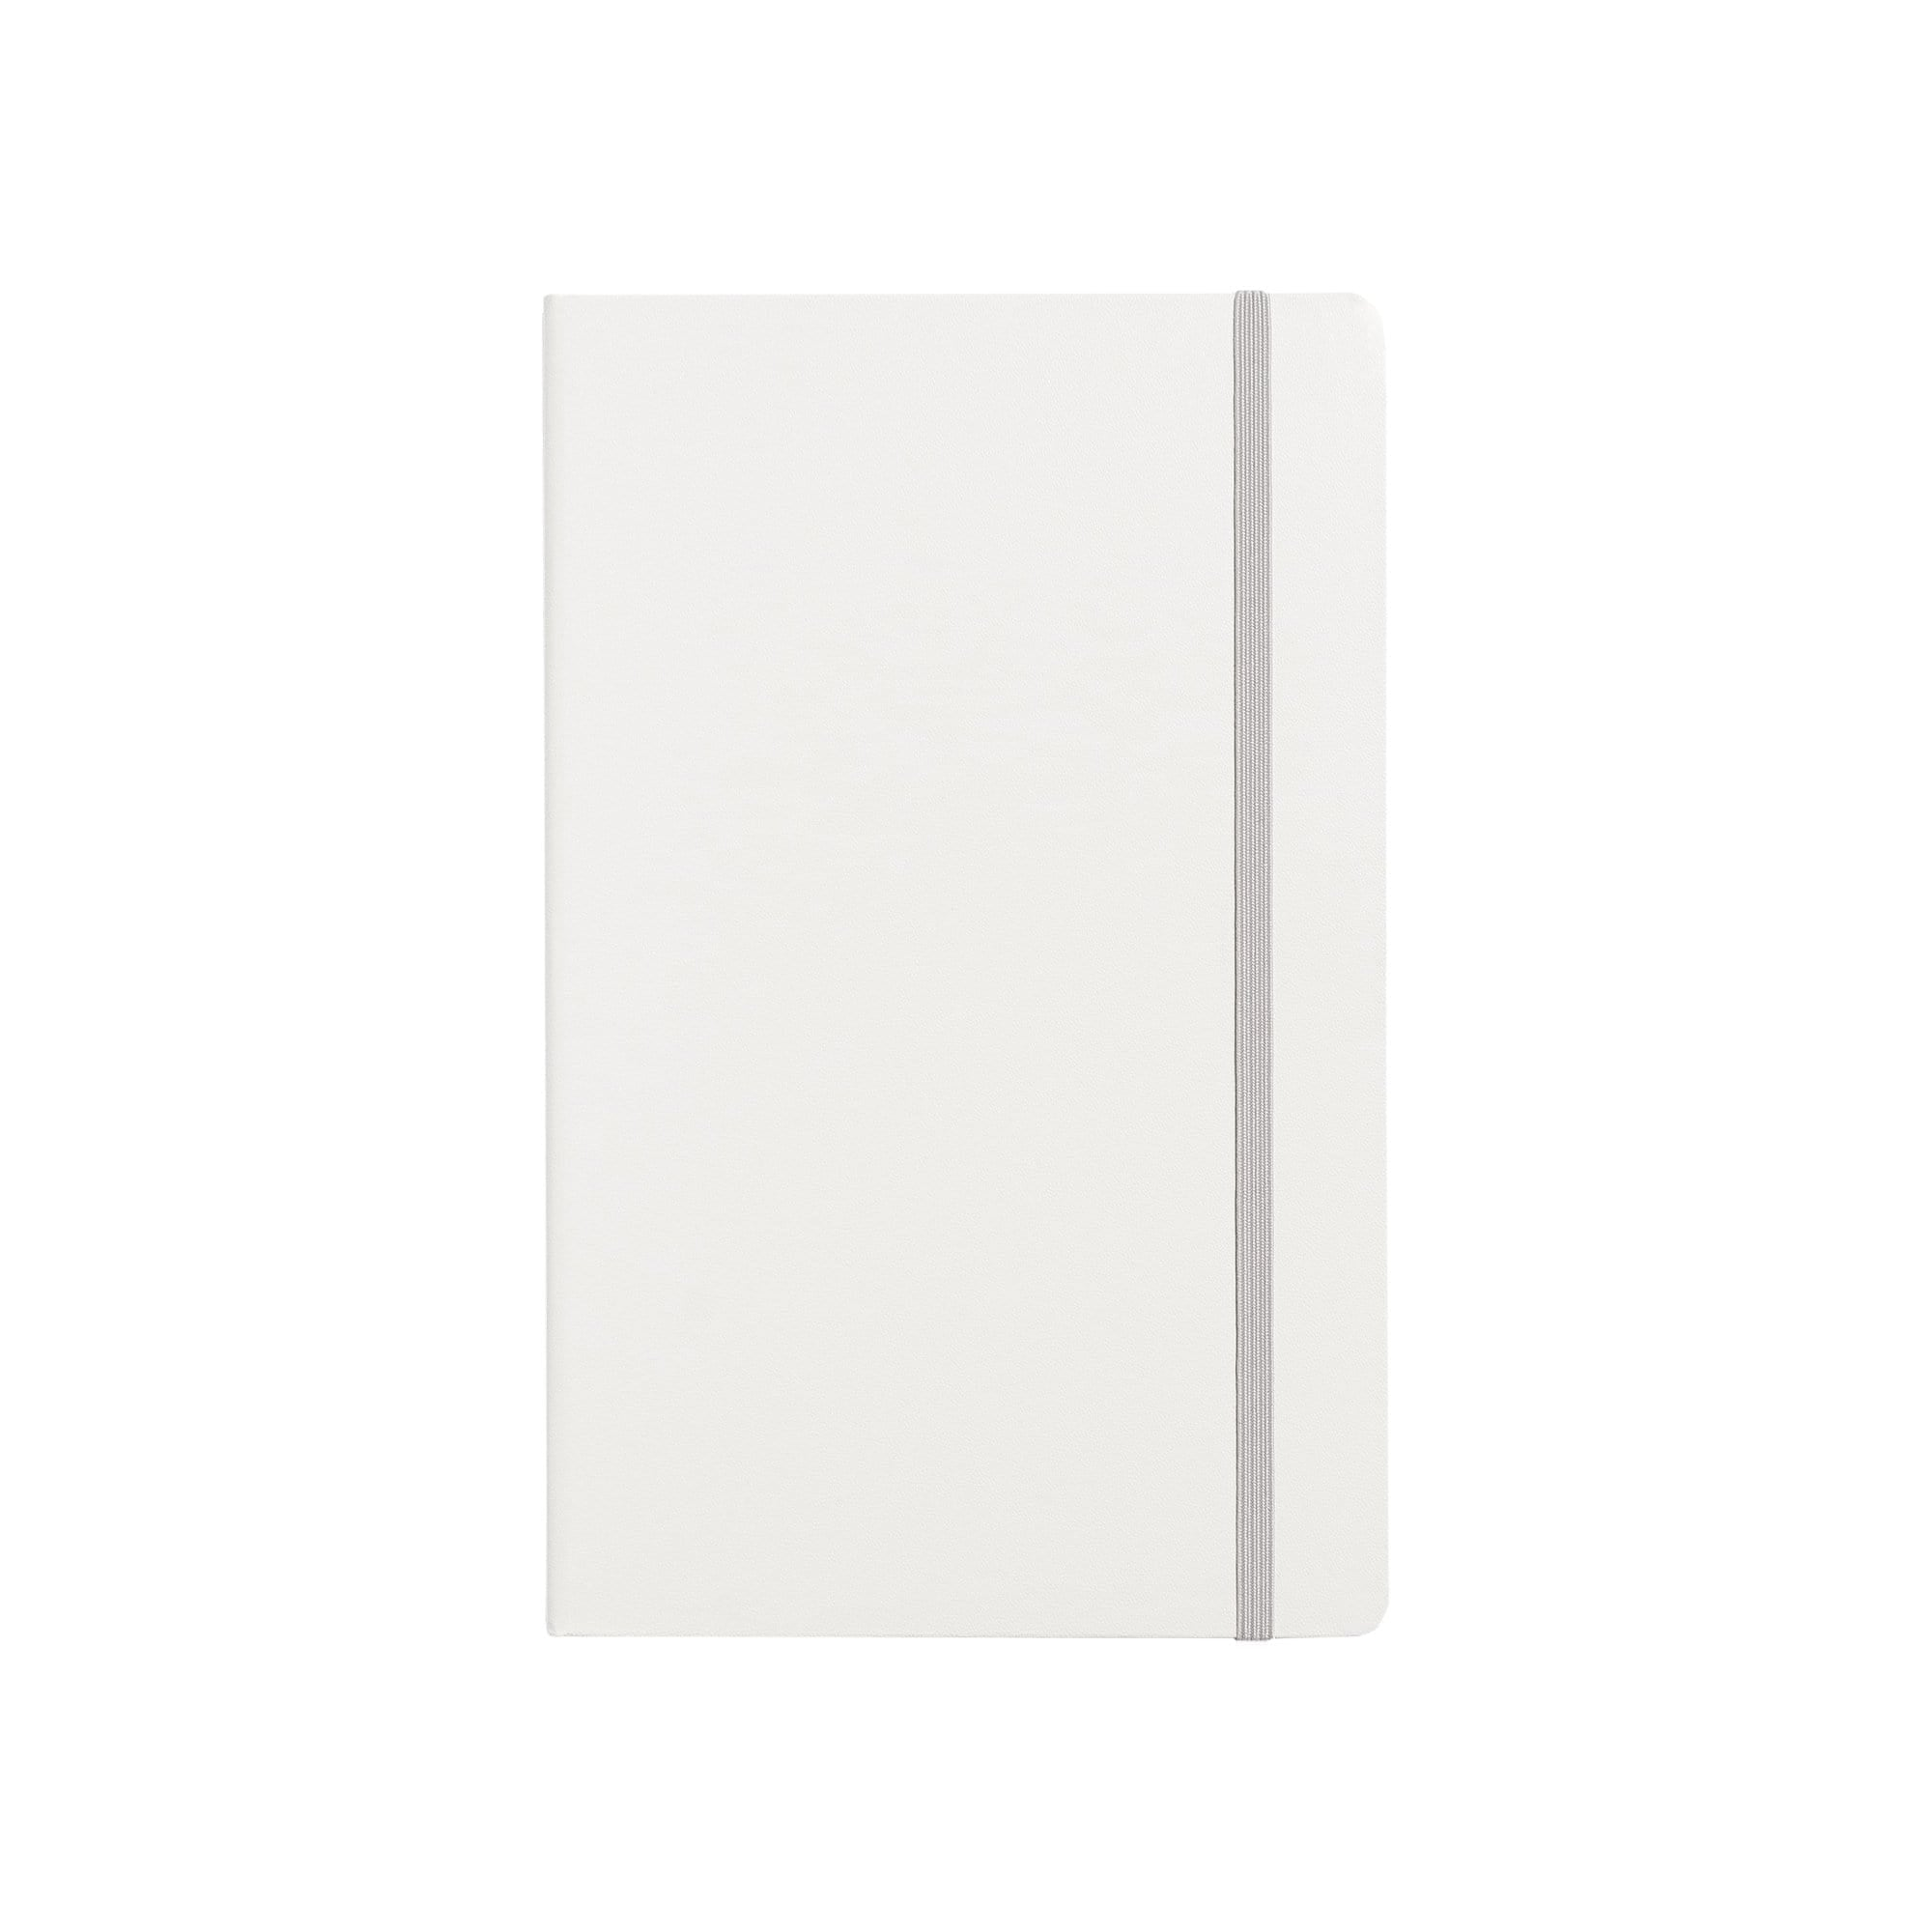 Construction White Notebook